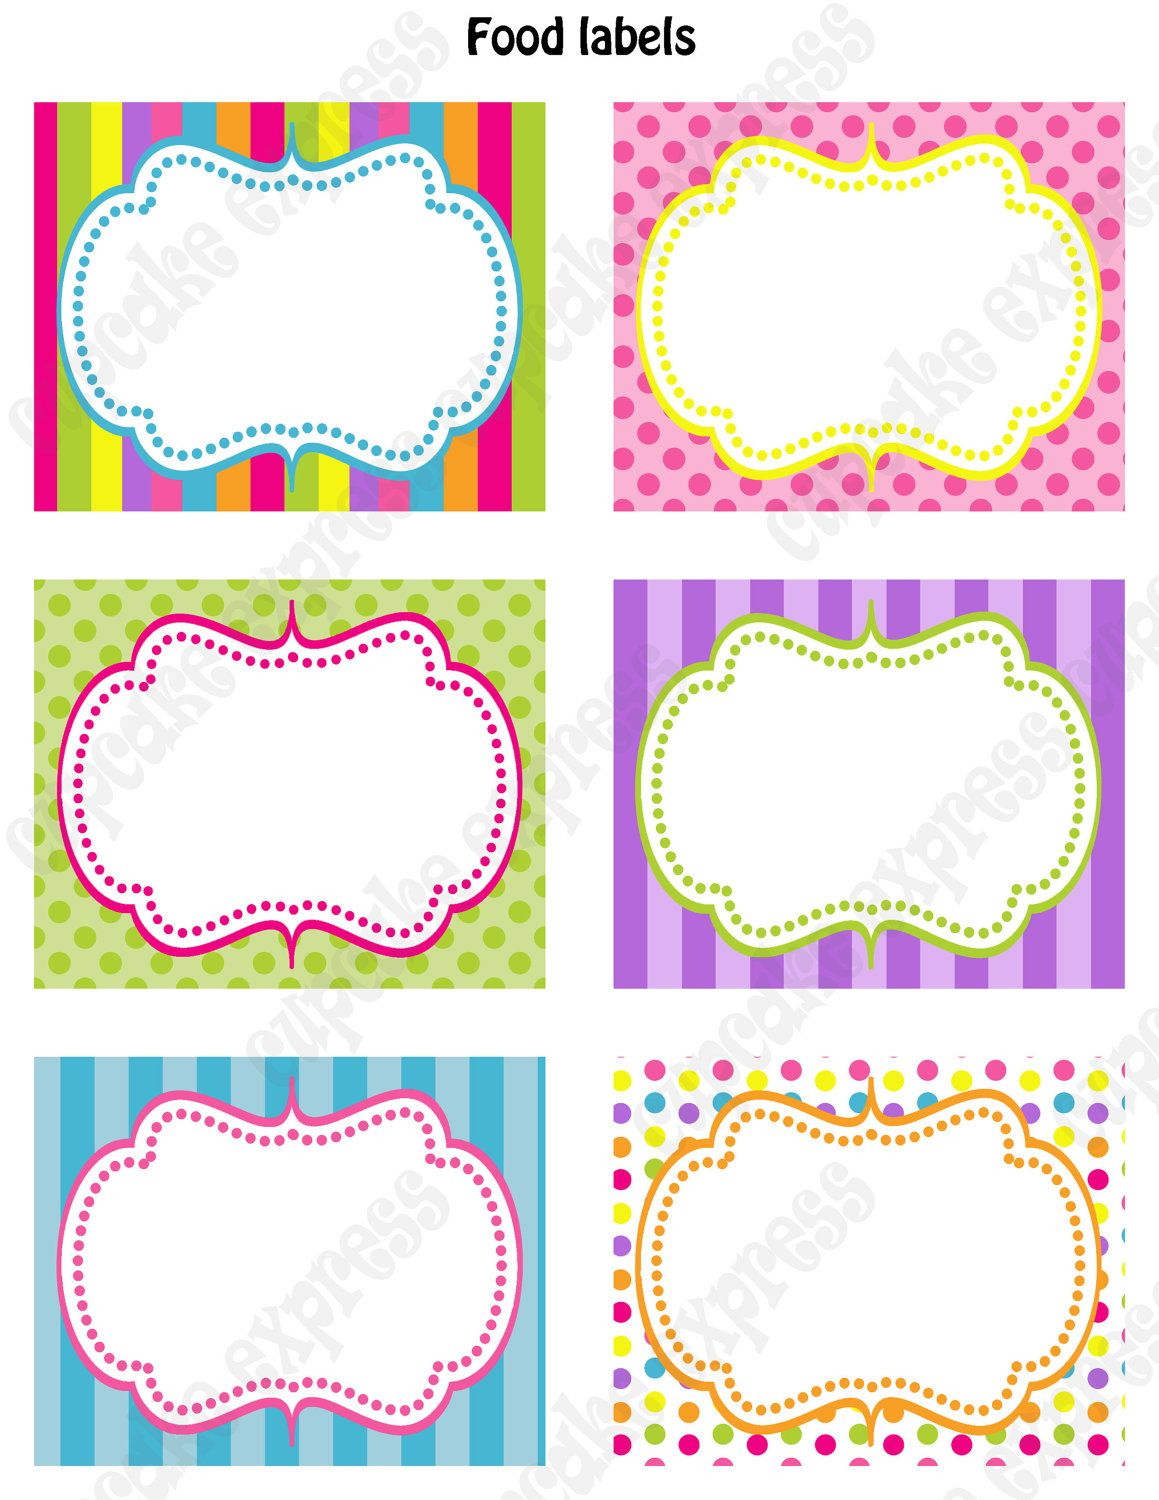 Candyland clipart border. Candy shoppe birthday party